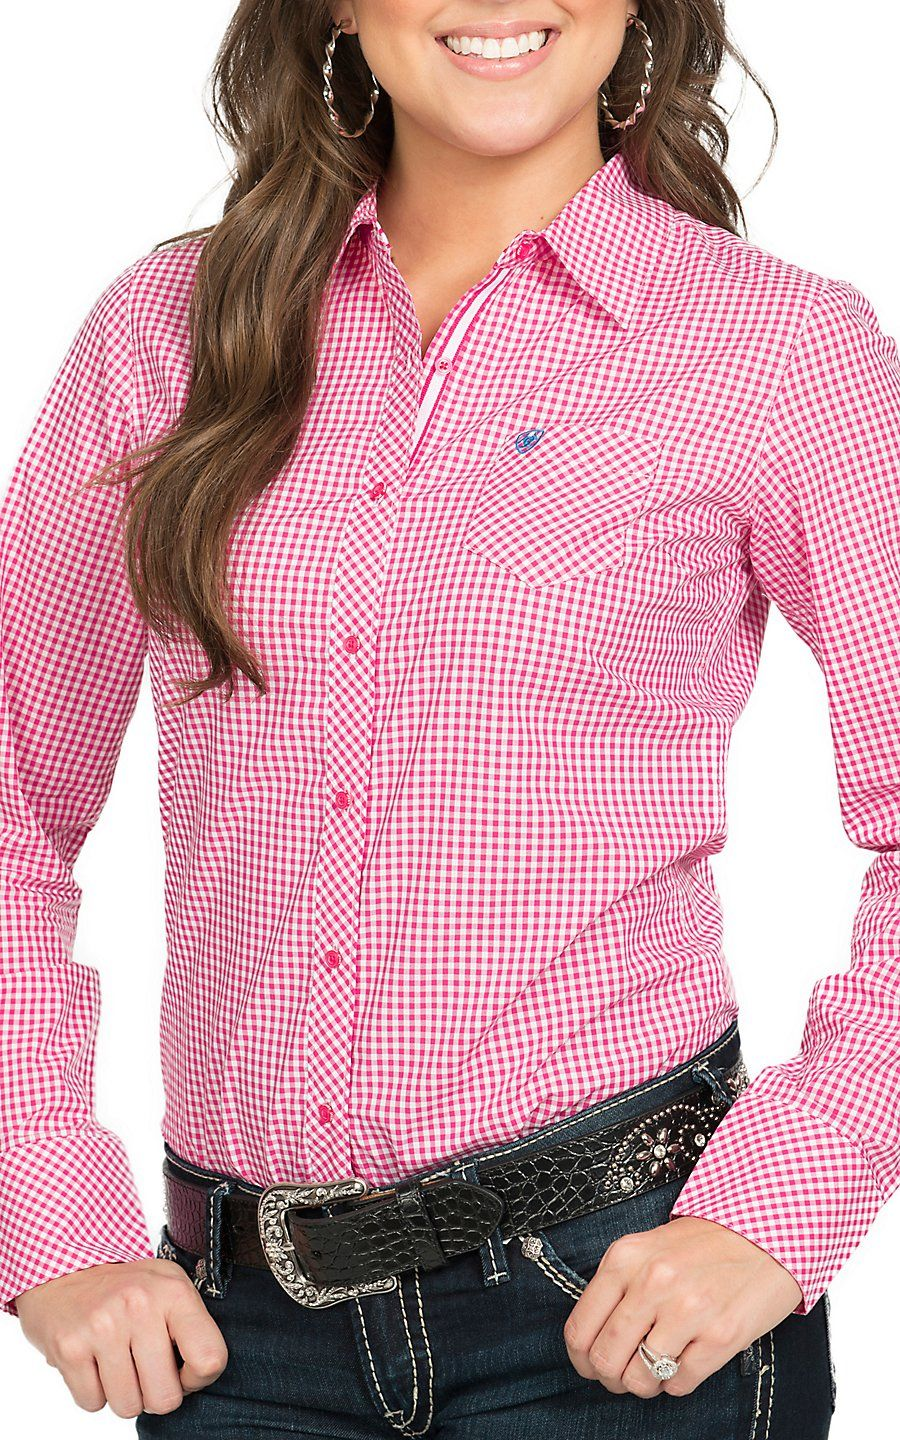 Ariat Women 39 S Kirby Pink White Gingham Plaid Long Sleeve